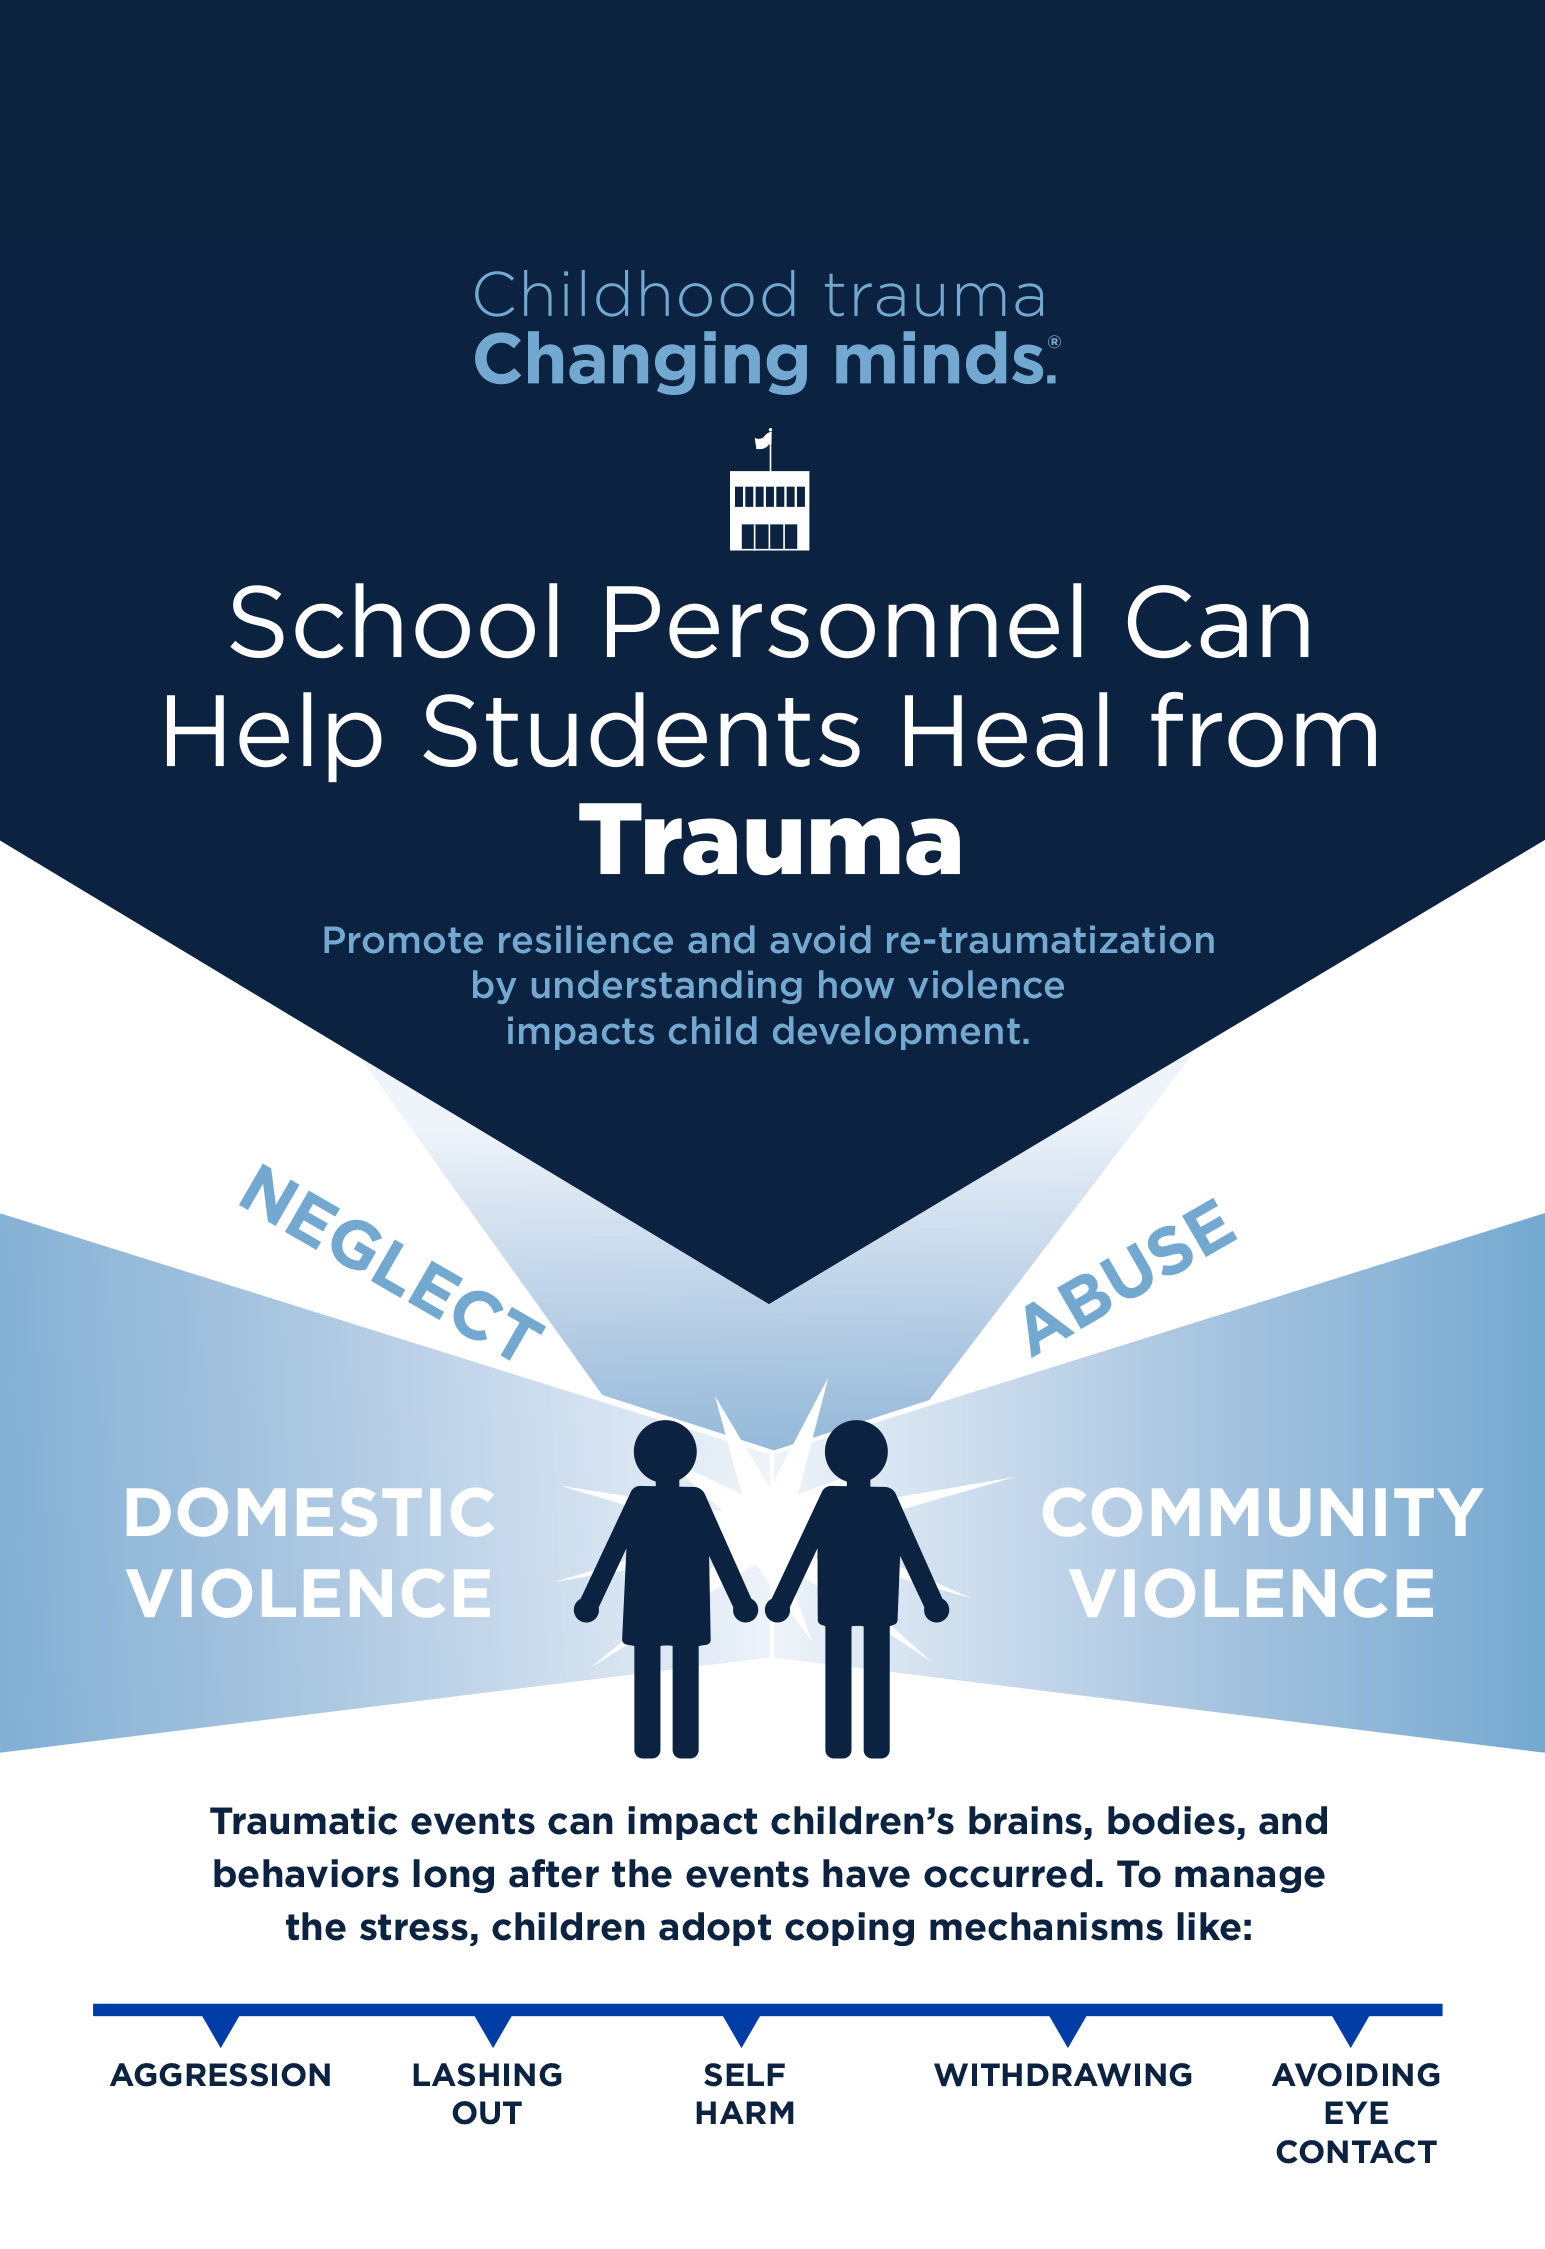 School Personnel Can Help Students Heal from Trauma - image 1